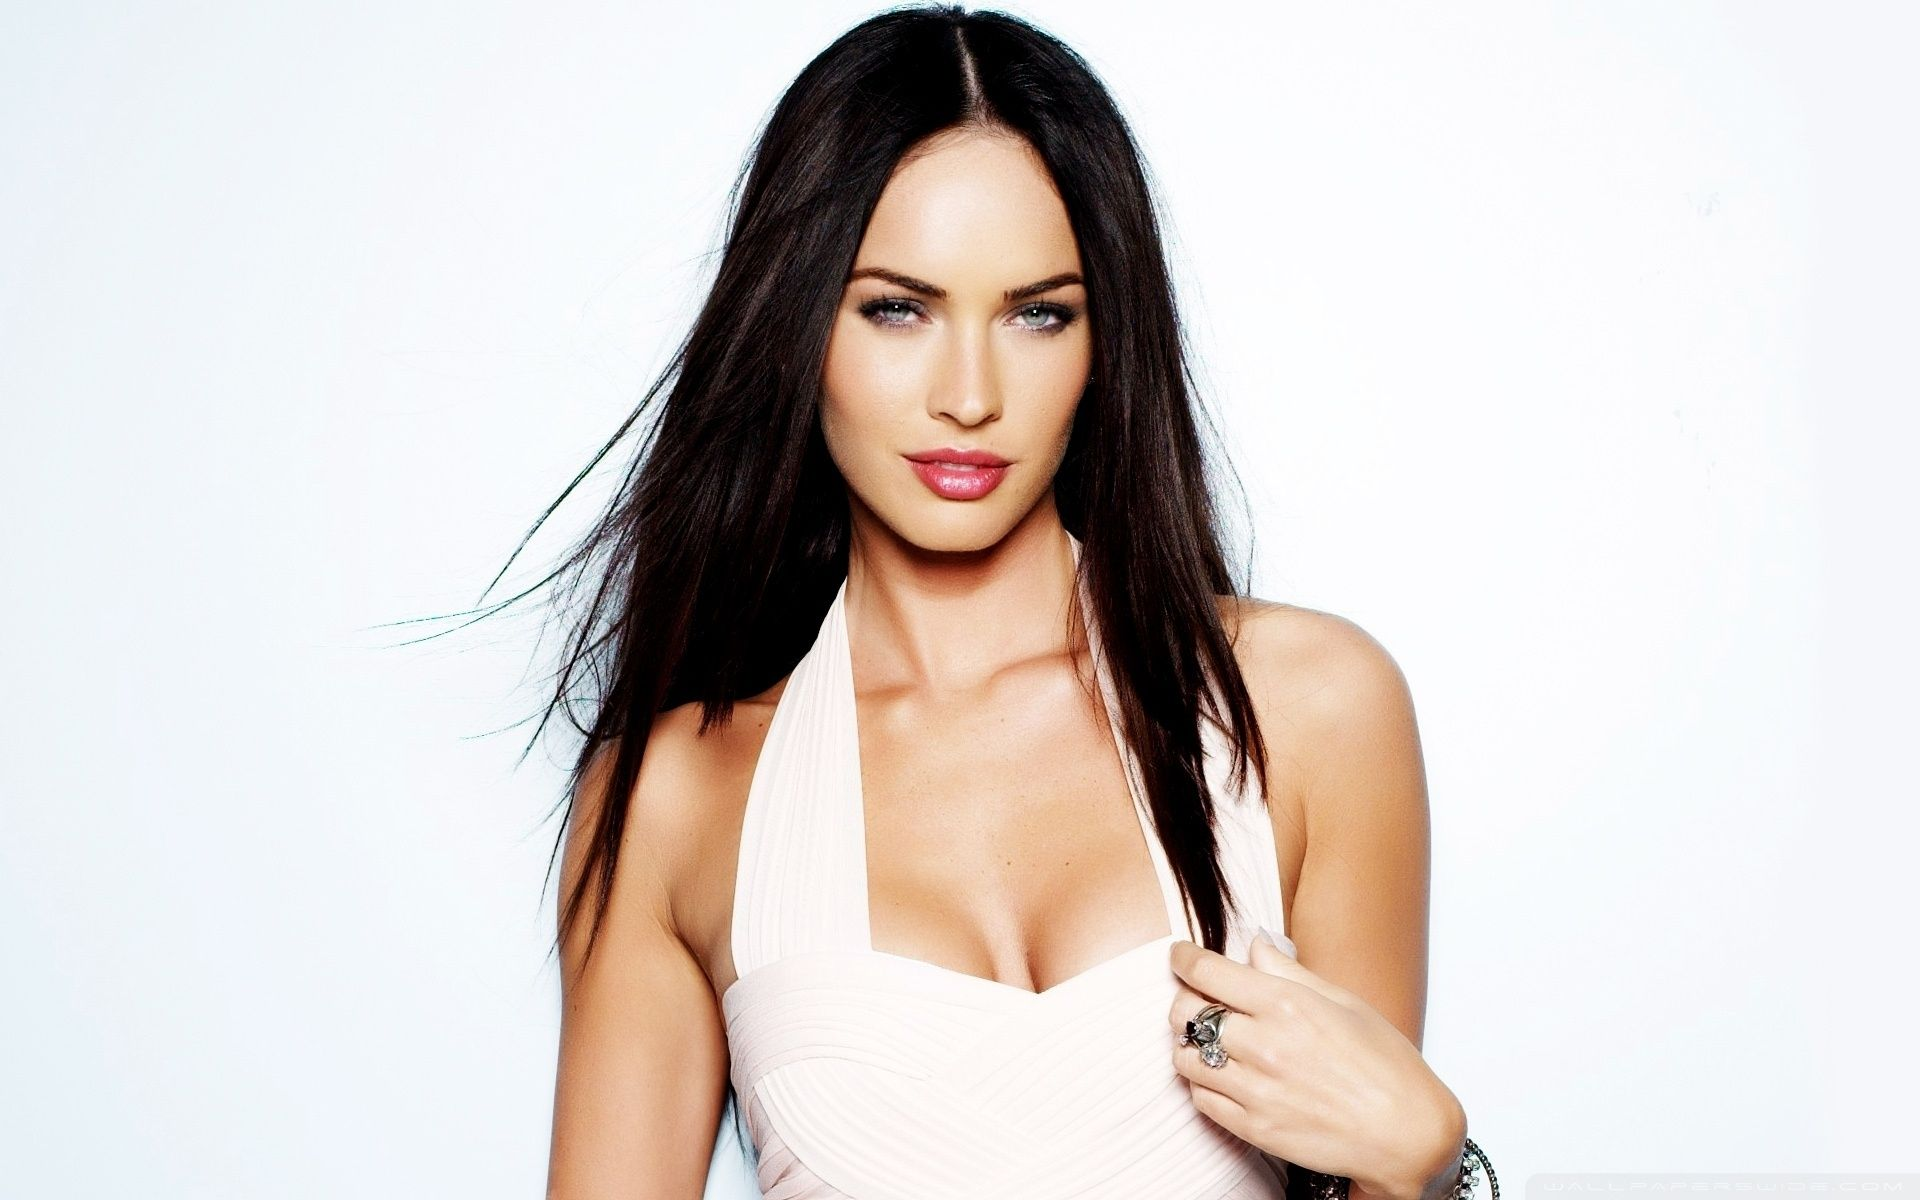 megan fox mobile wallpapers hd phone wallpapers | hd wallpapers